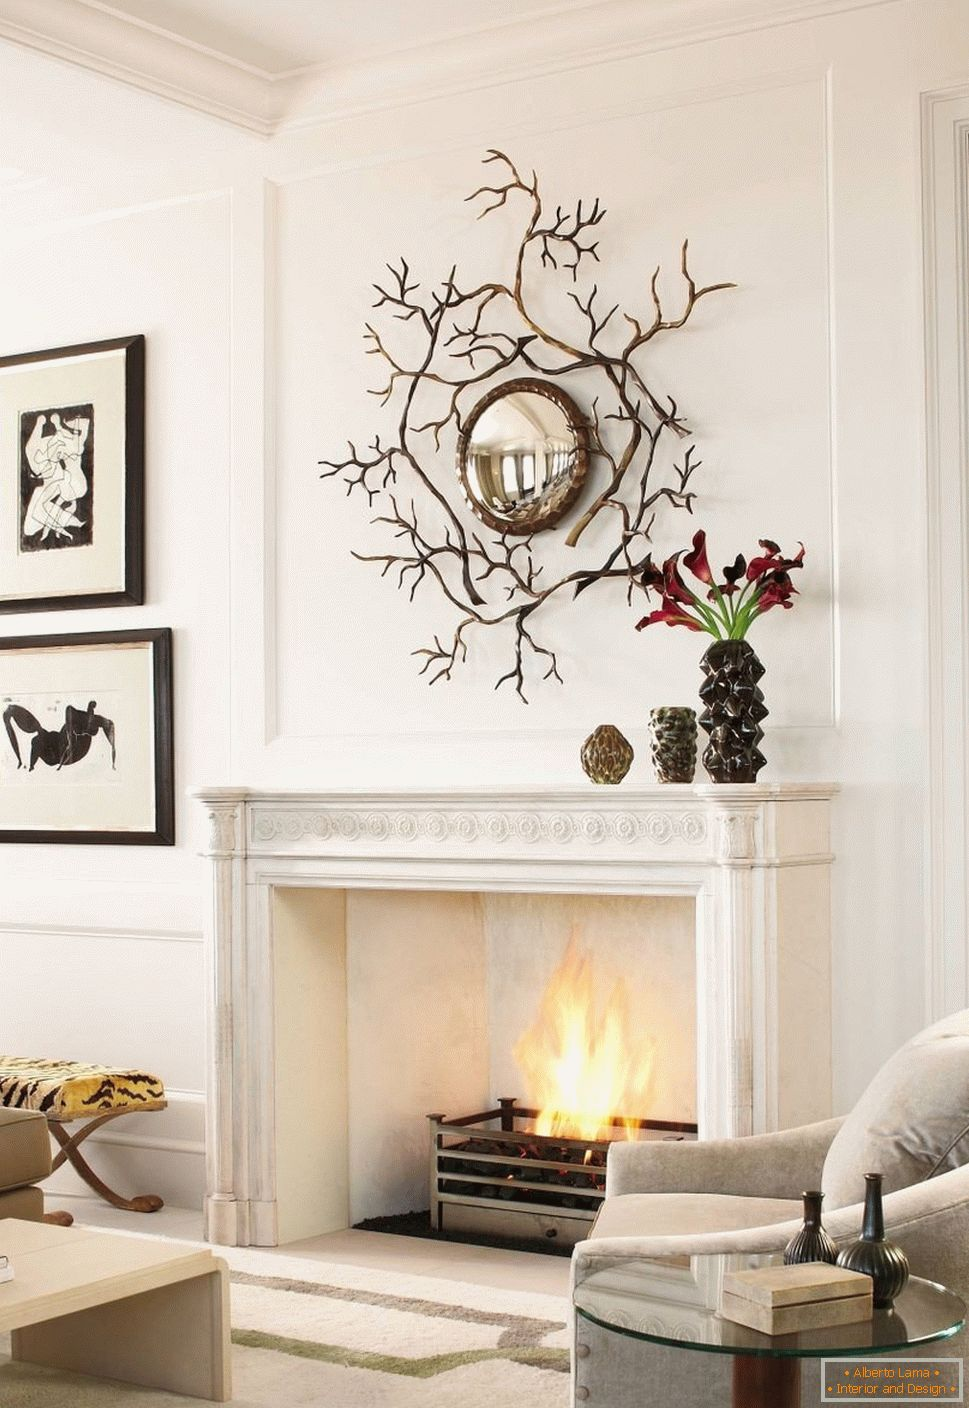 Interesting decoration of the mirror over the fireplace